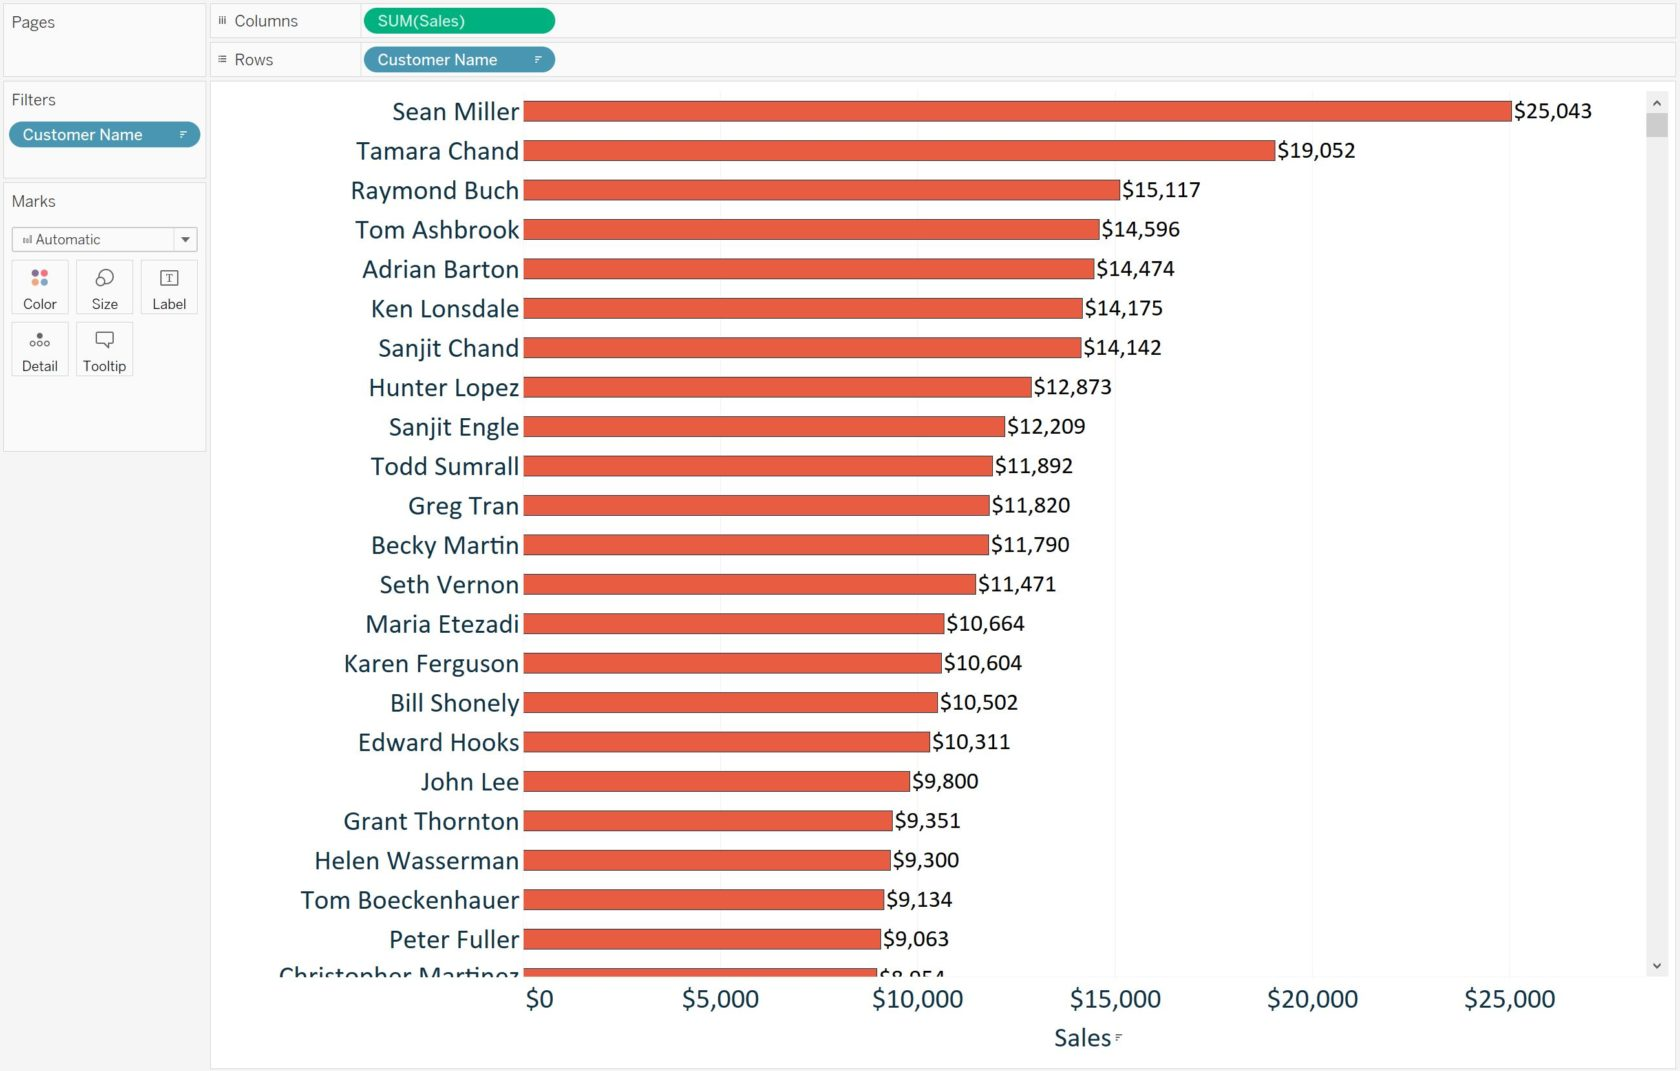 Tableau Sorted Bar Chart Sales by Customer with Customer Name Filter